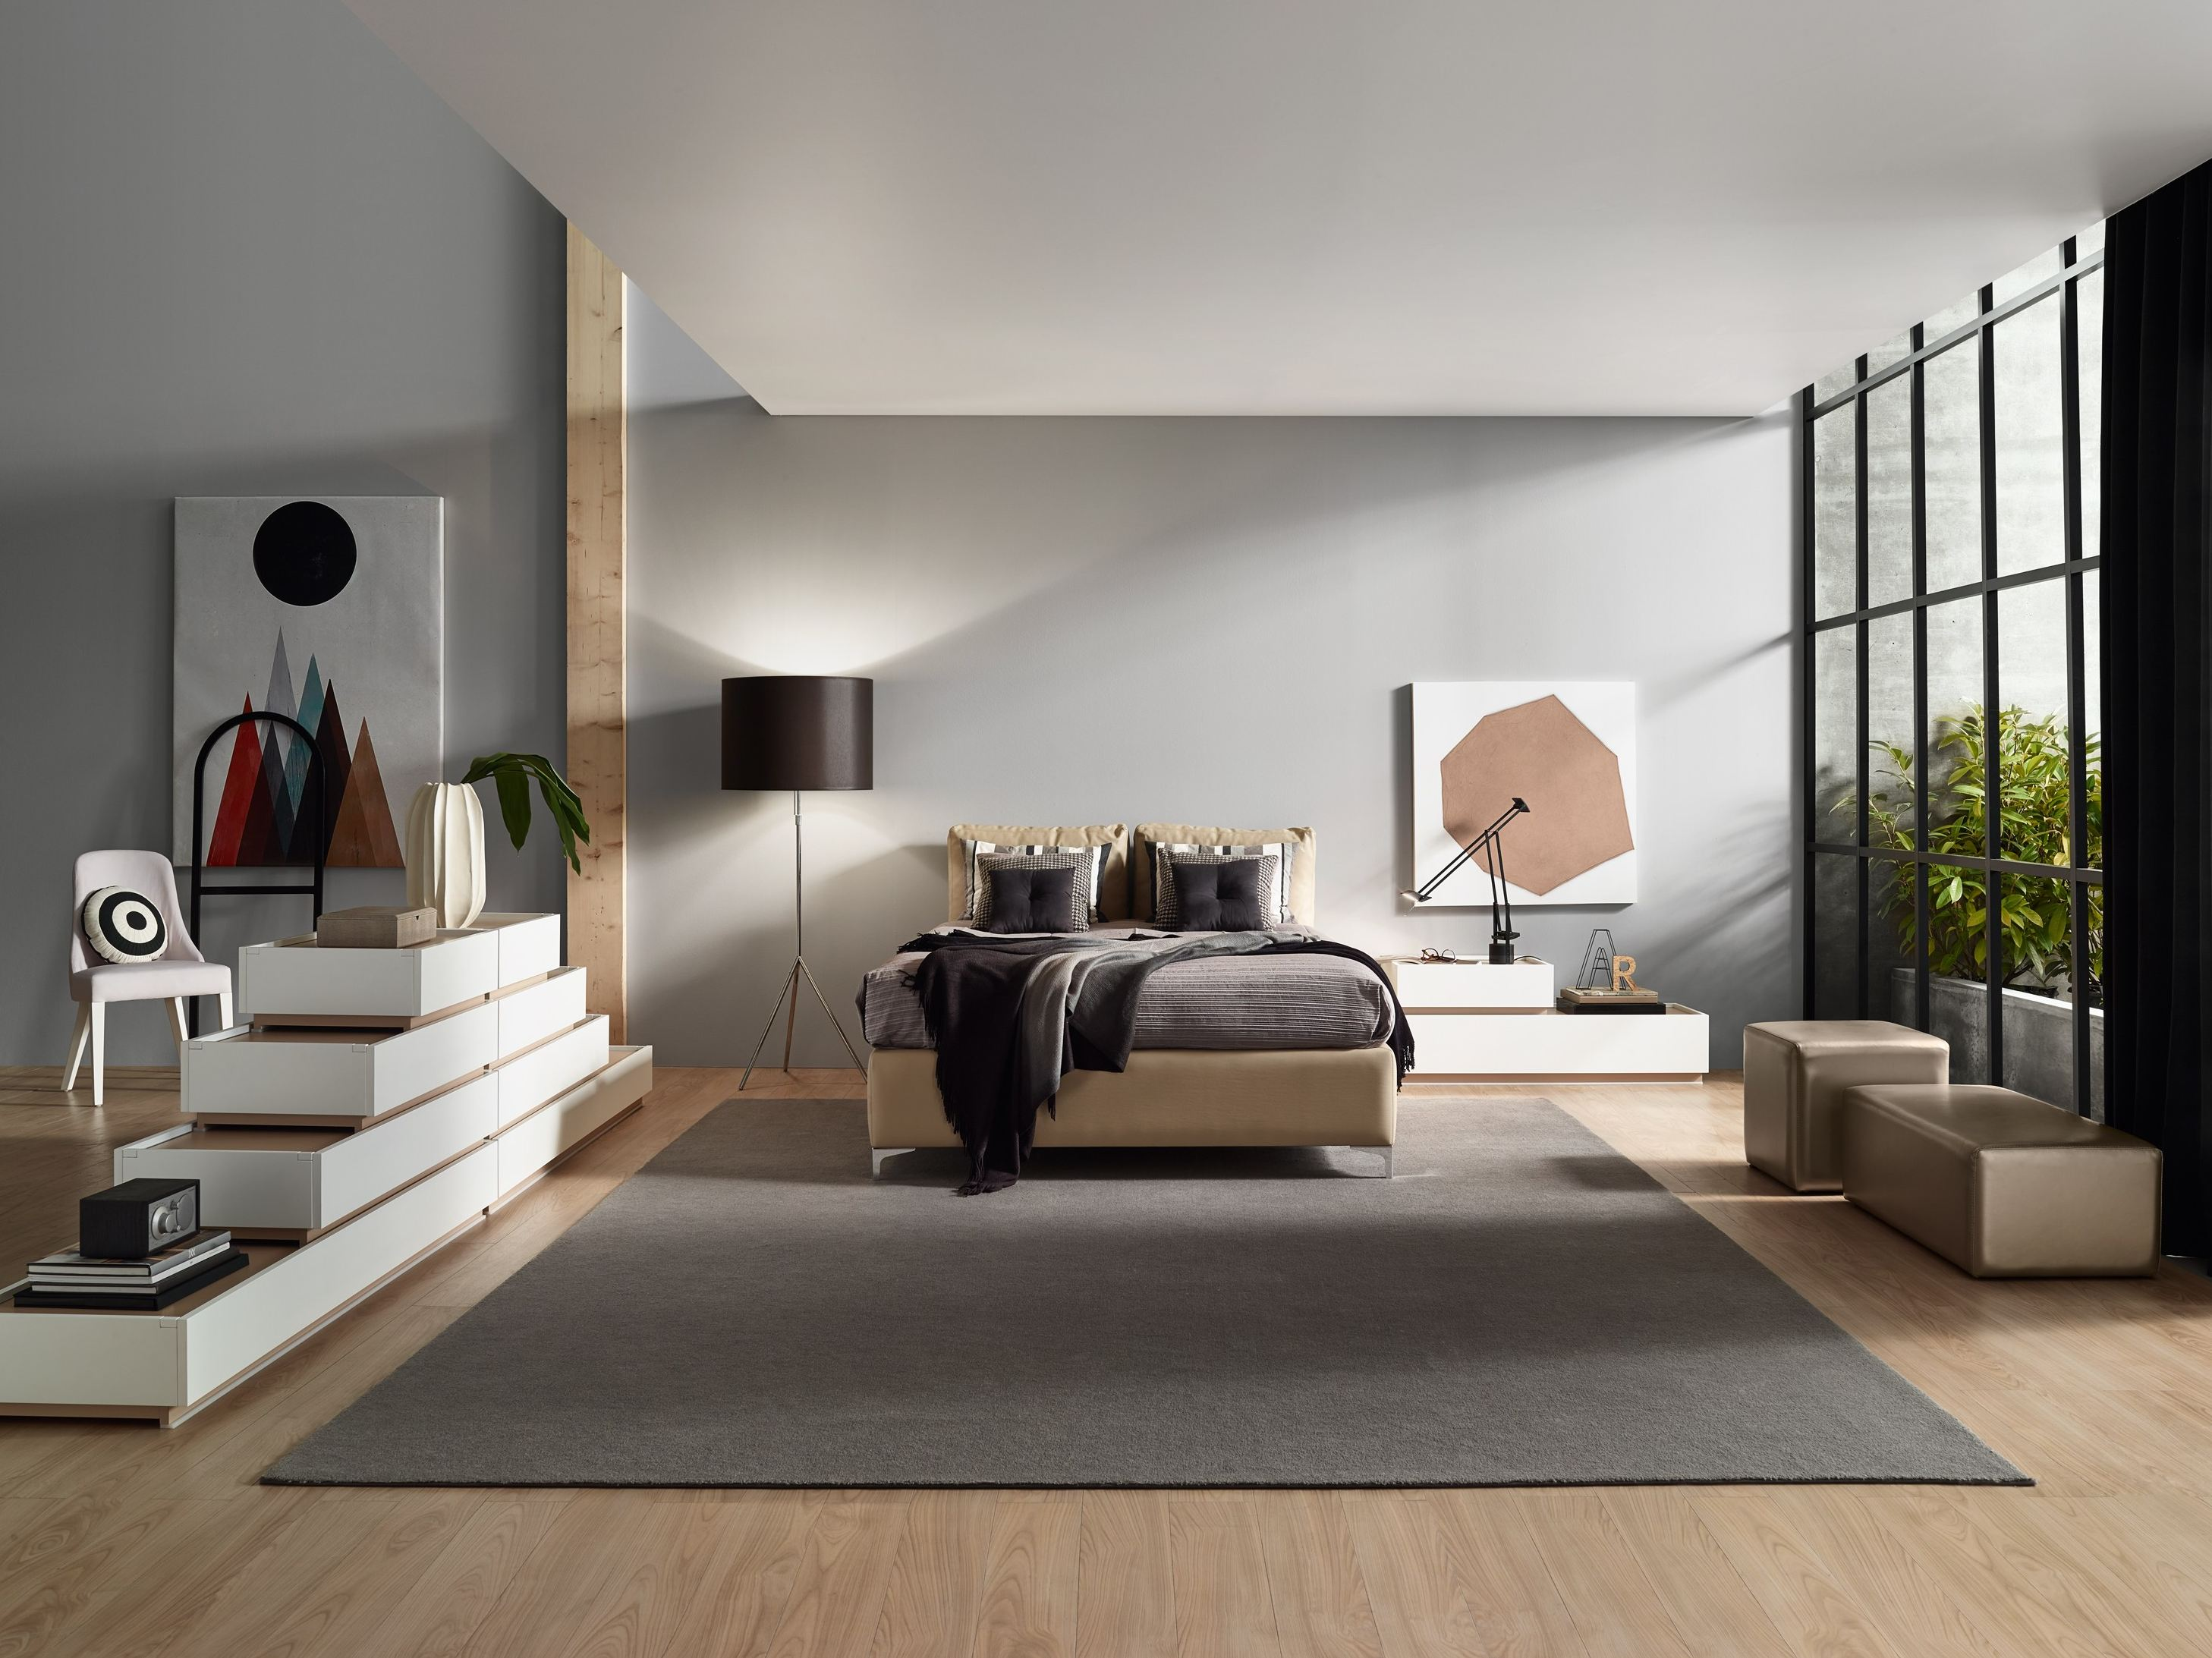 Arredare una camera da letto in stile moderno for Design moderno interni